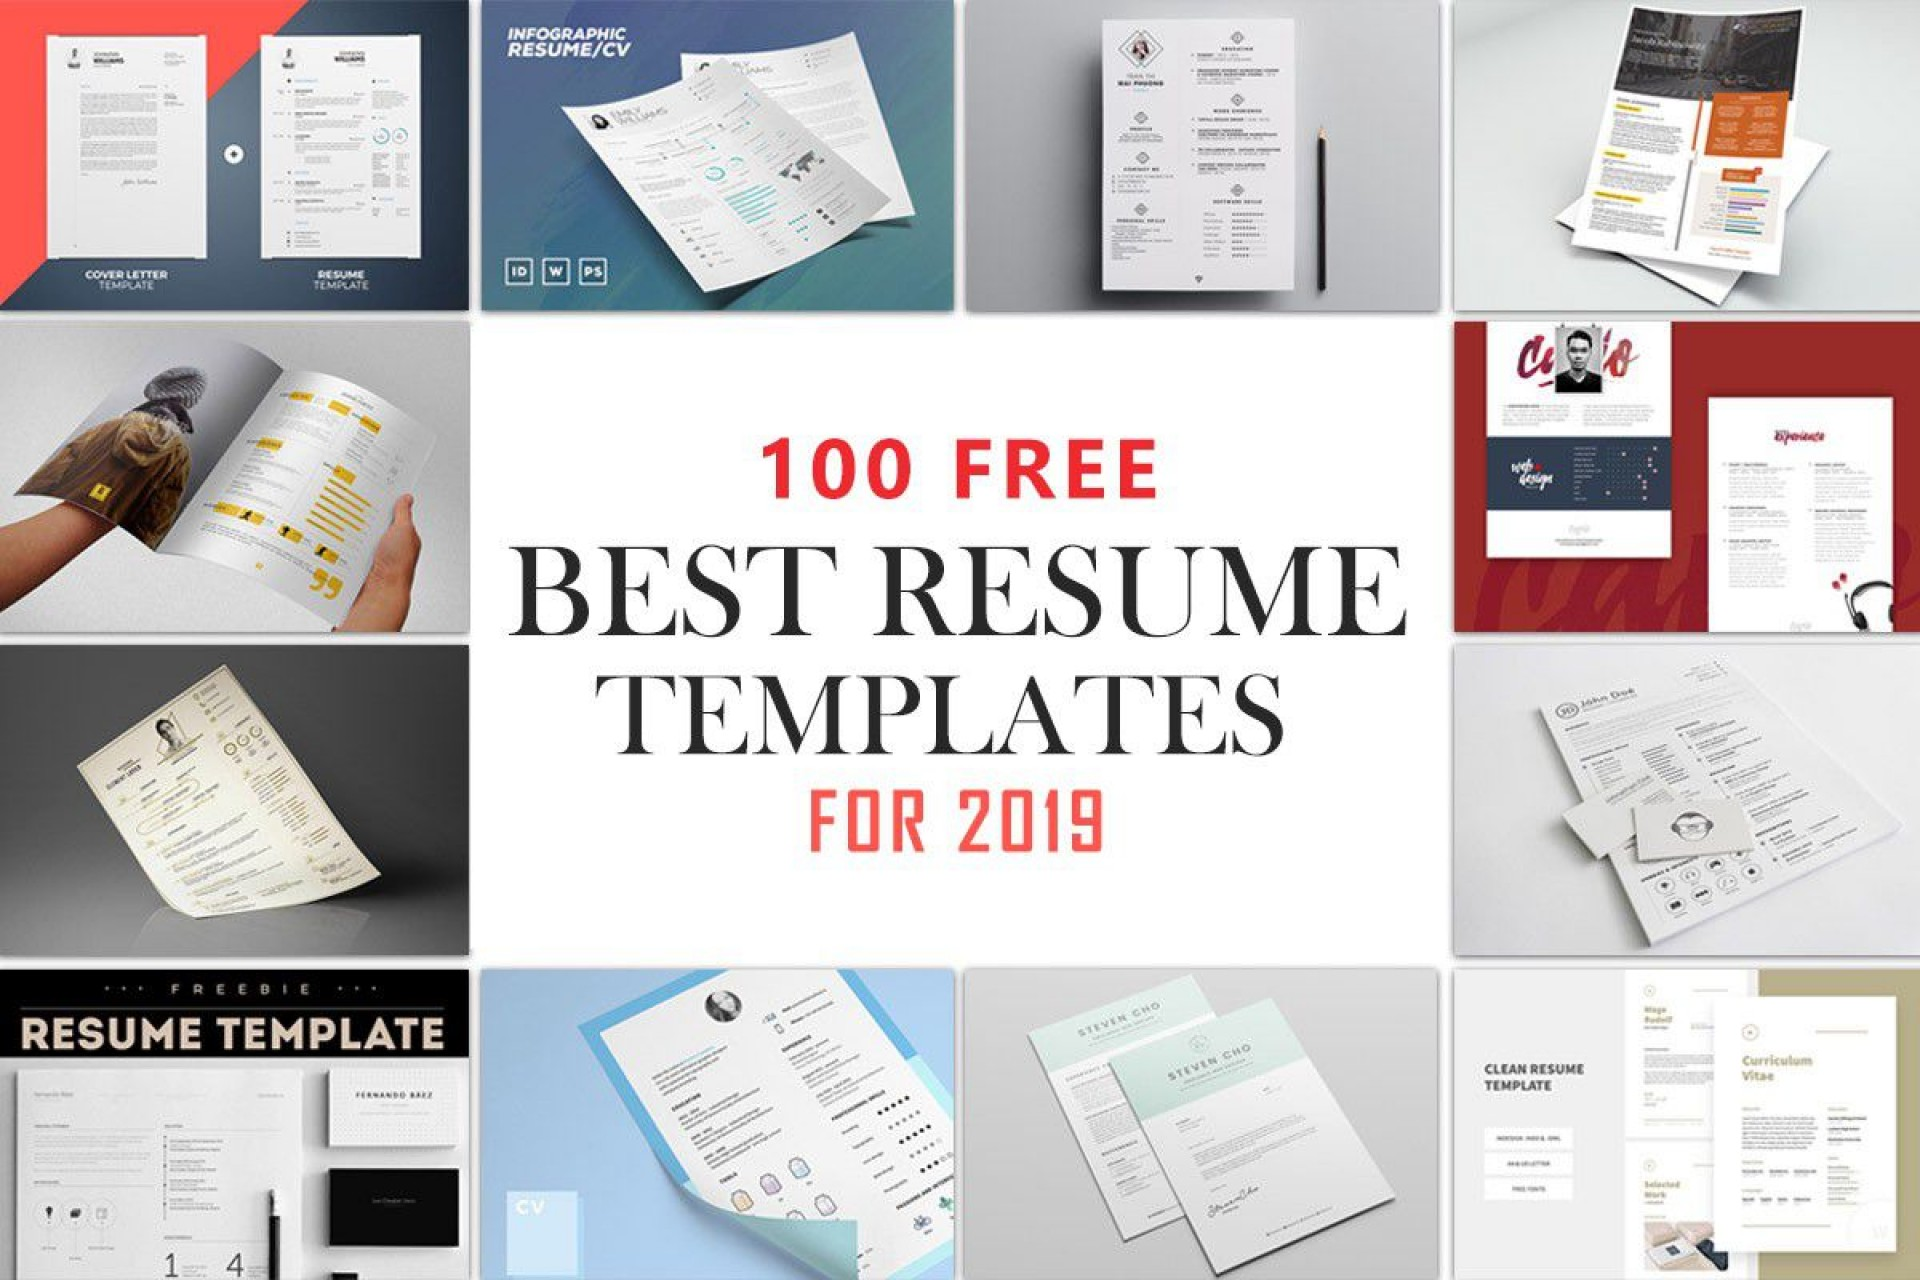 001 Simple Best Free Resume Template 2020 Design  Word Review1920